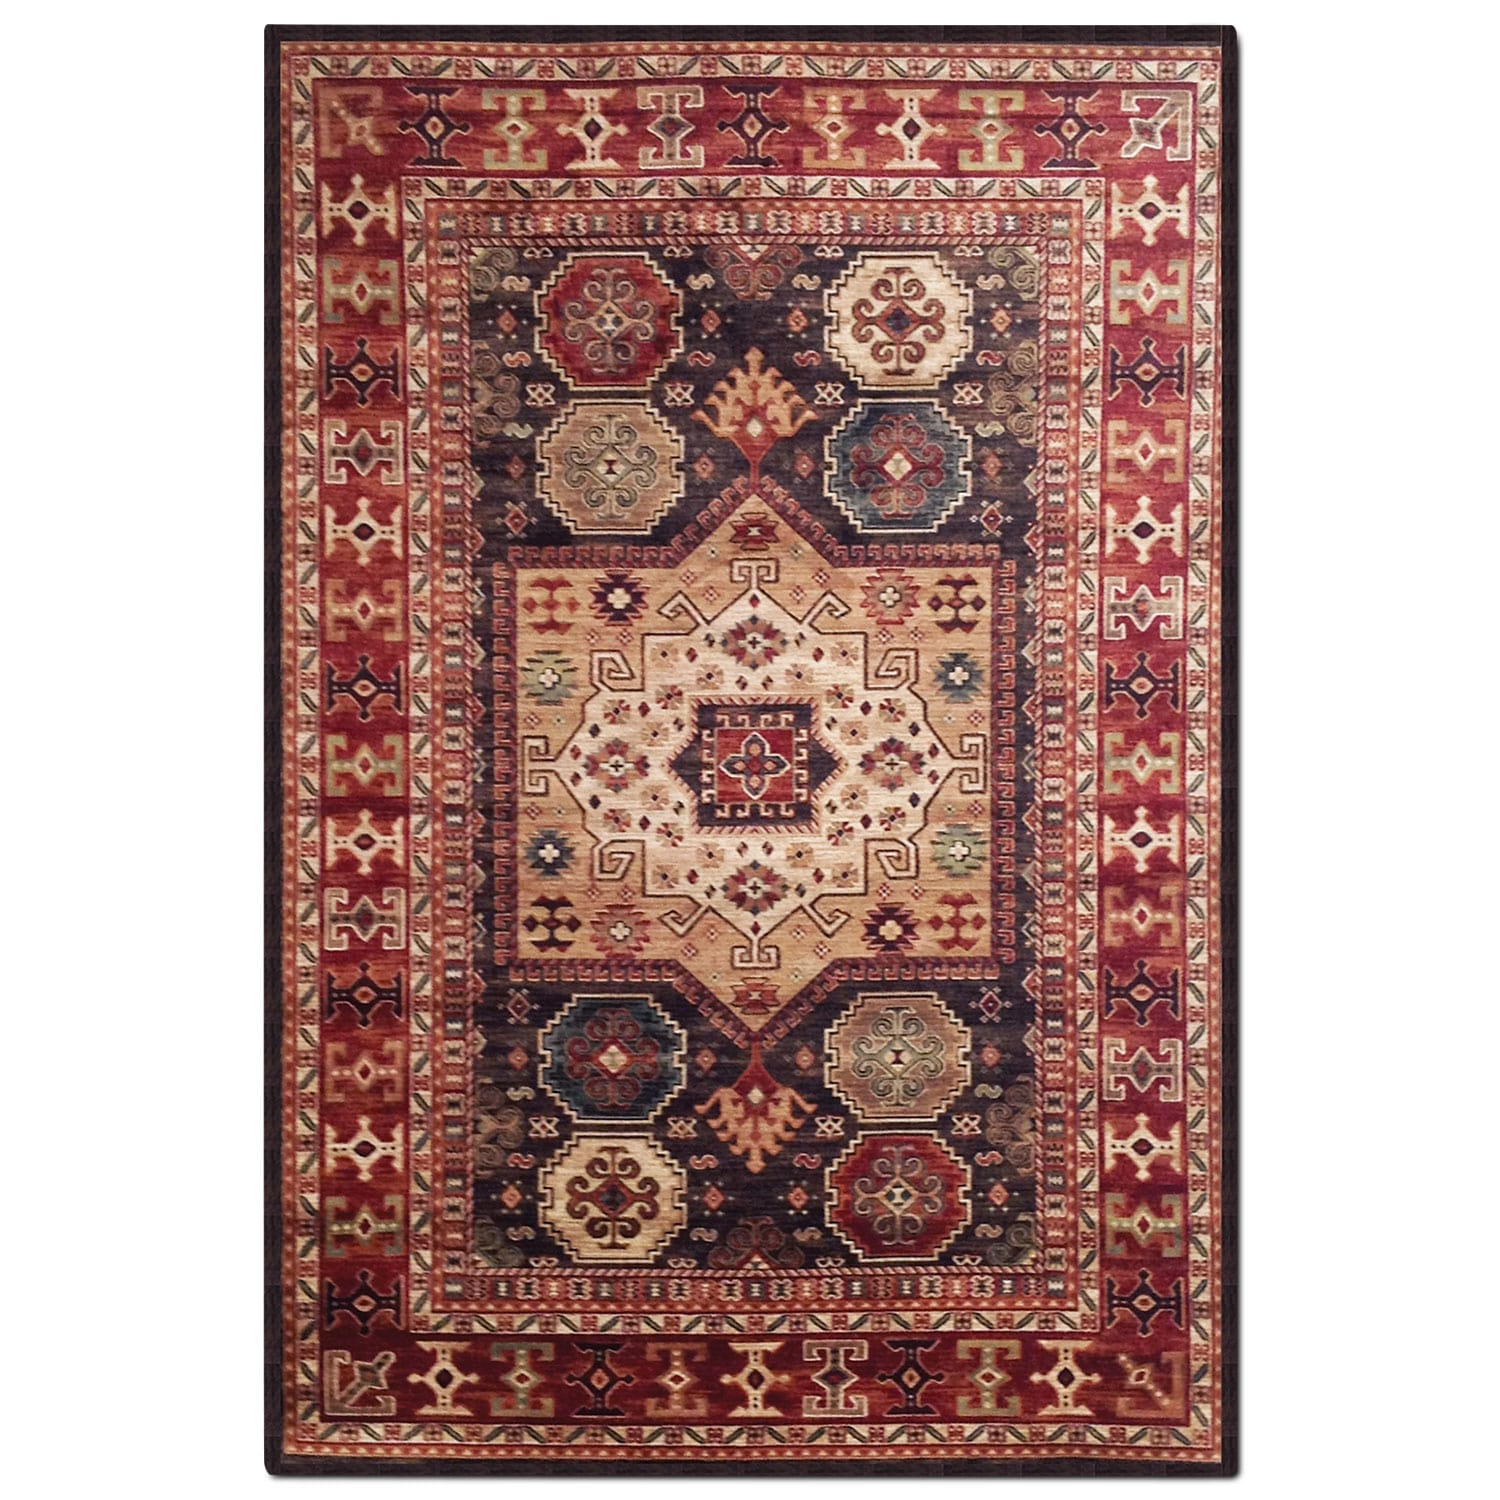 Sonoma 5 X 8 Area Rug Chocolate And Red Value City